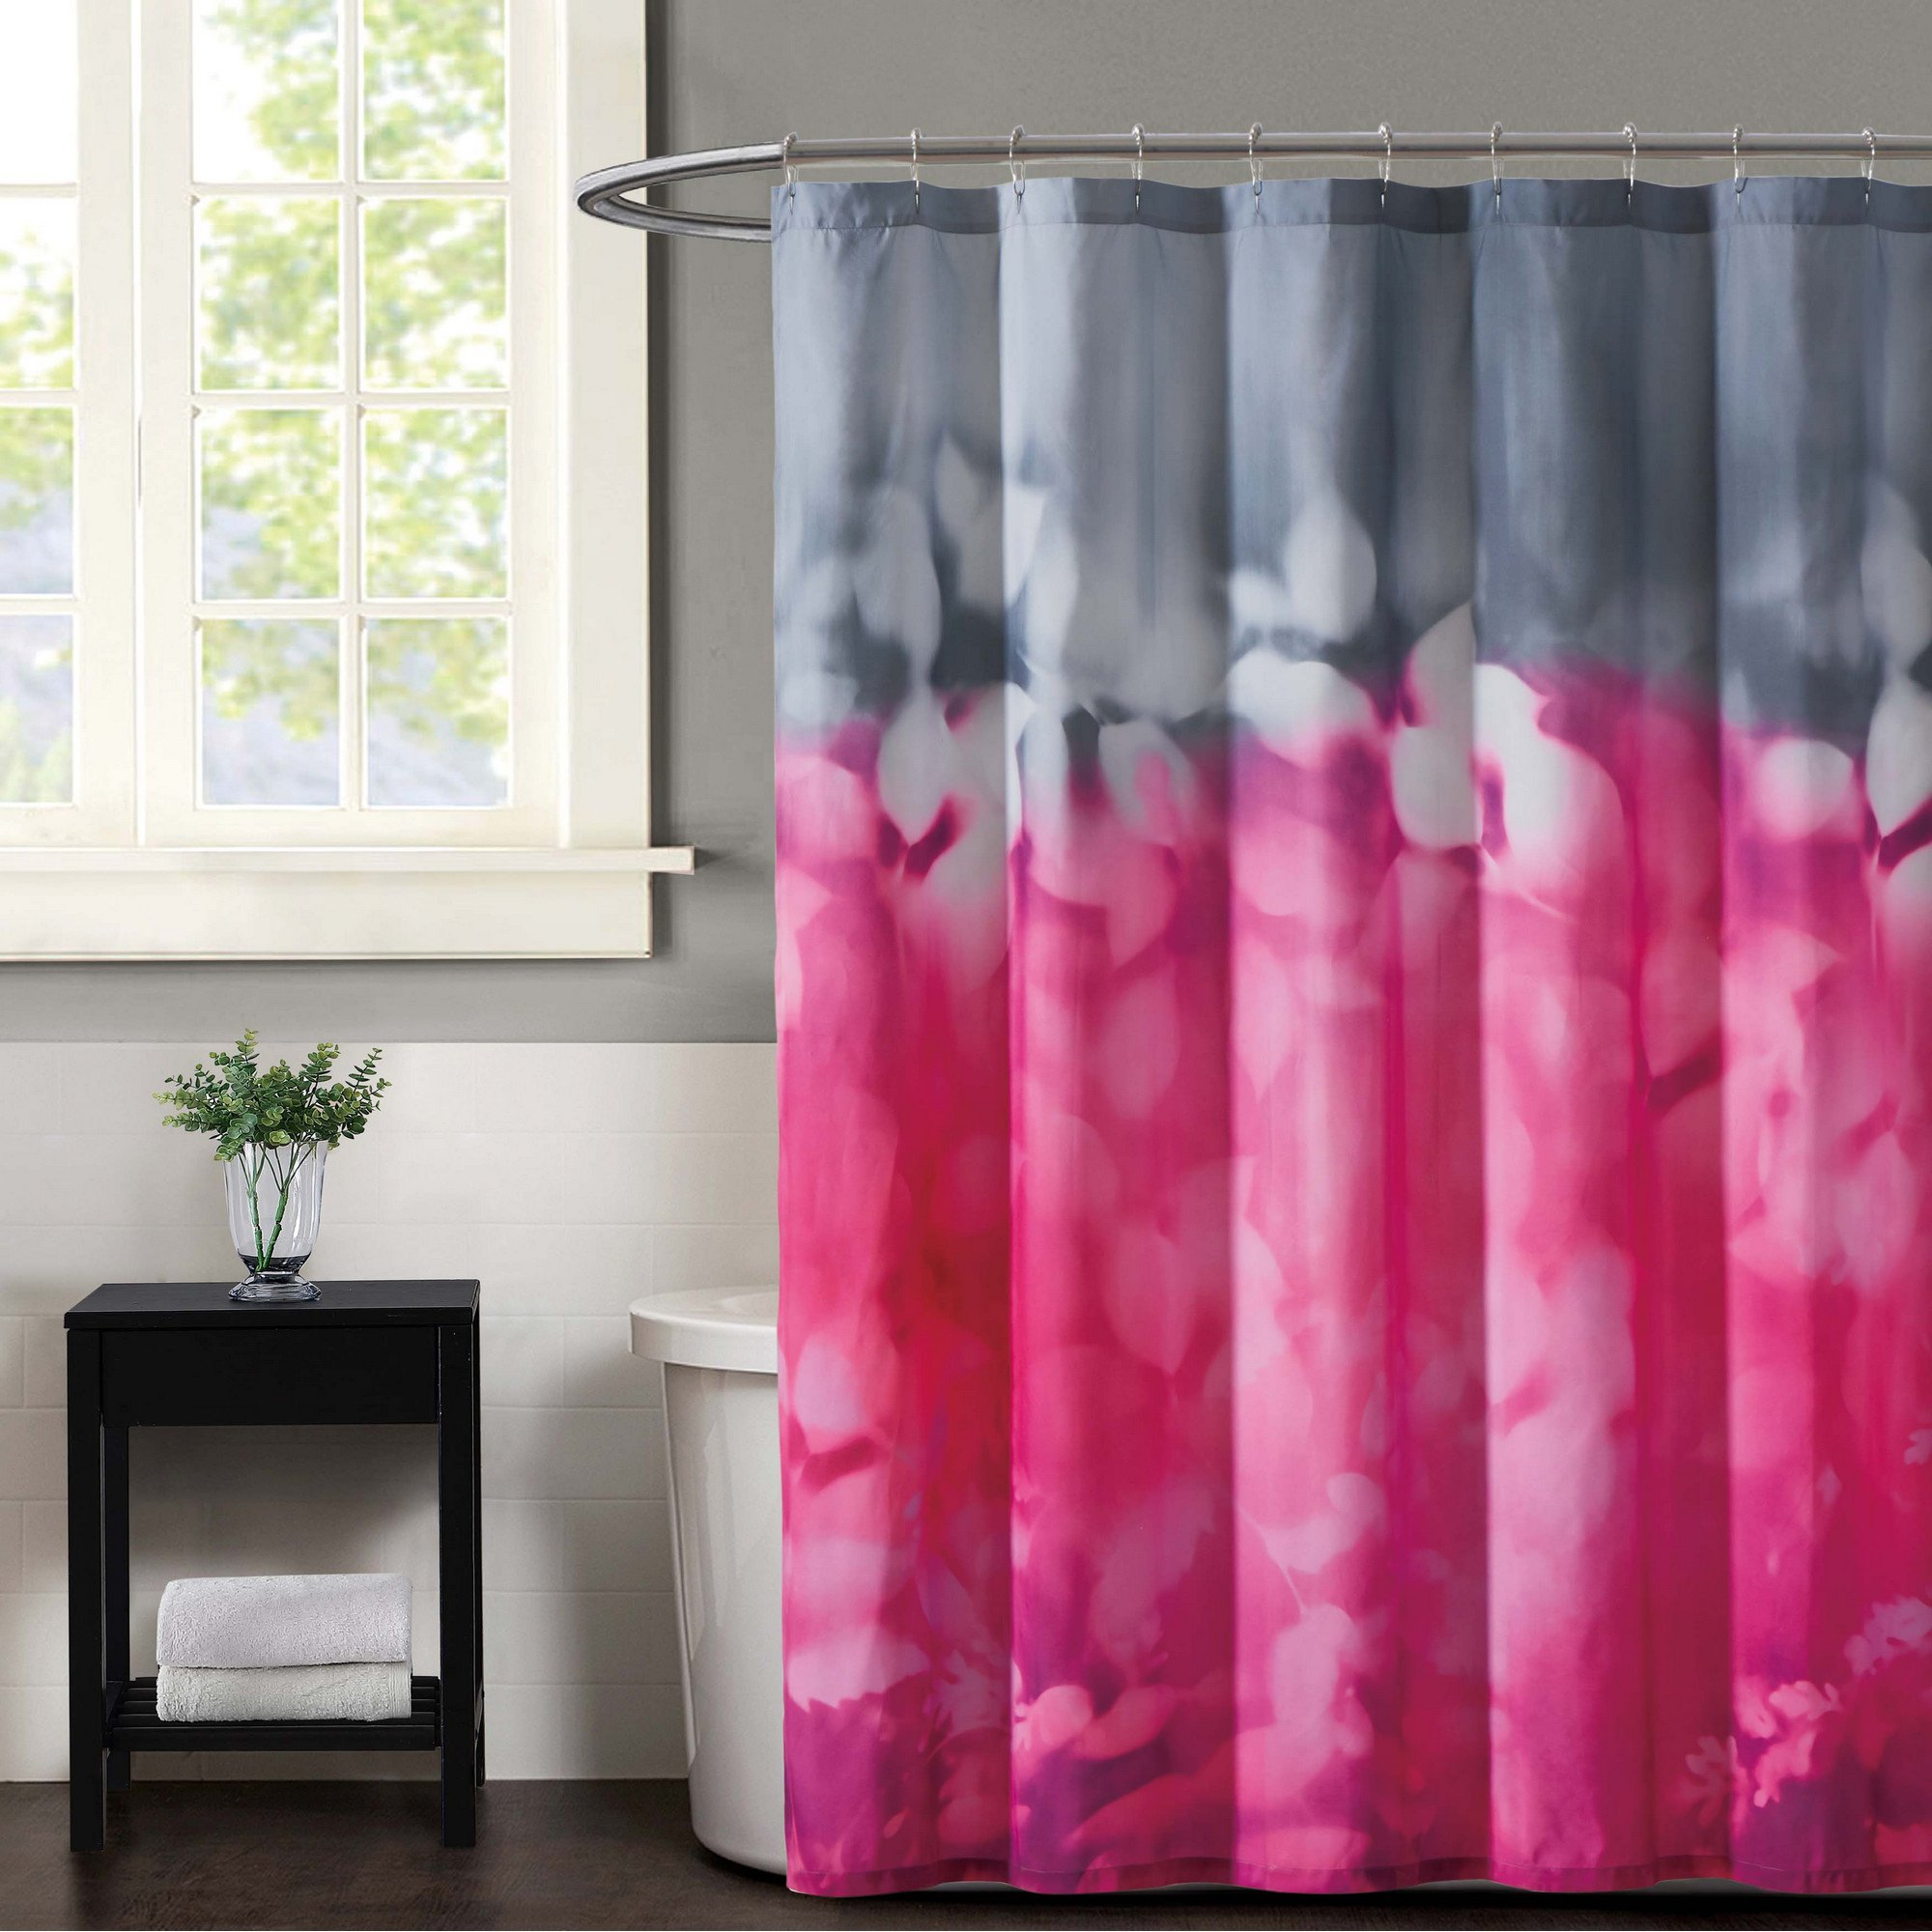 Christian Siriano Botanical Ombre Shower Curtain, 72'' x 72'', Magenta/Grey by Christian Siriano